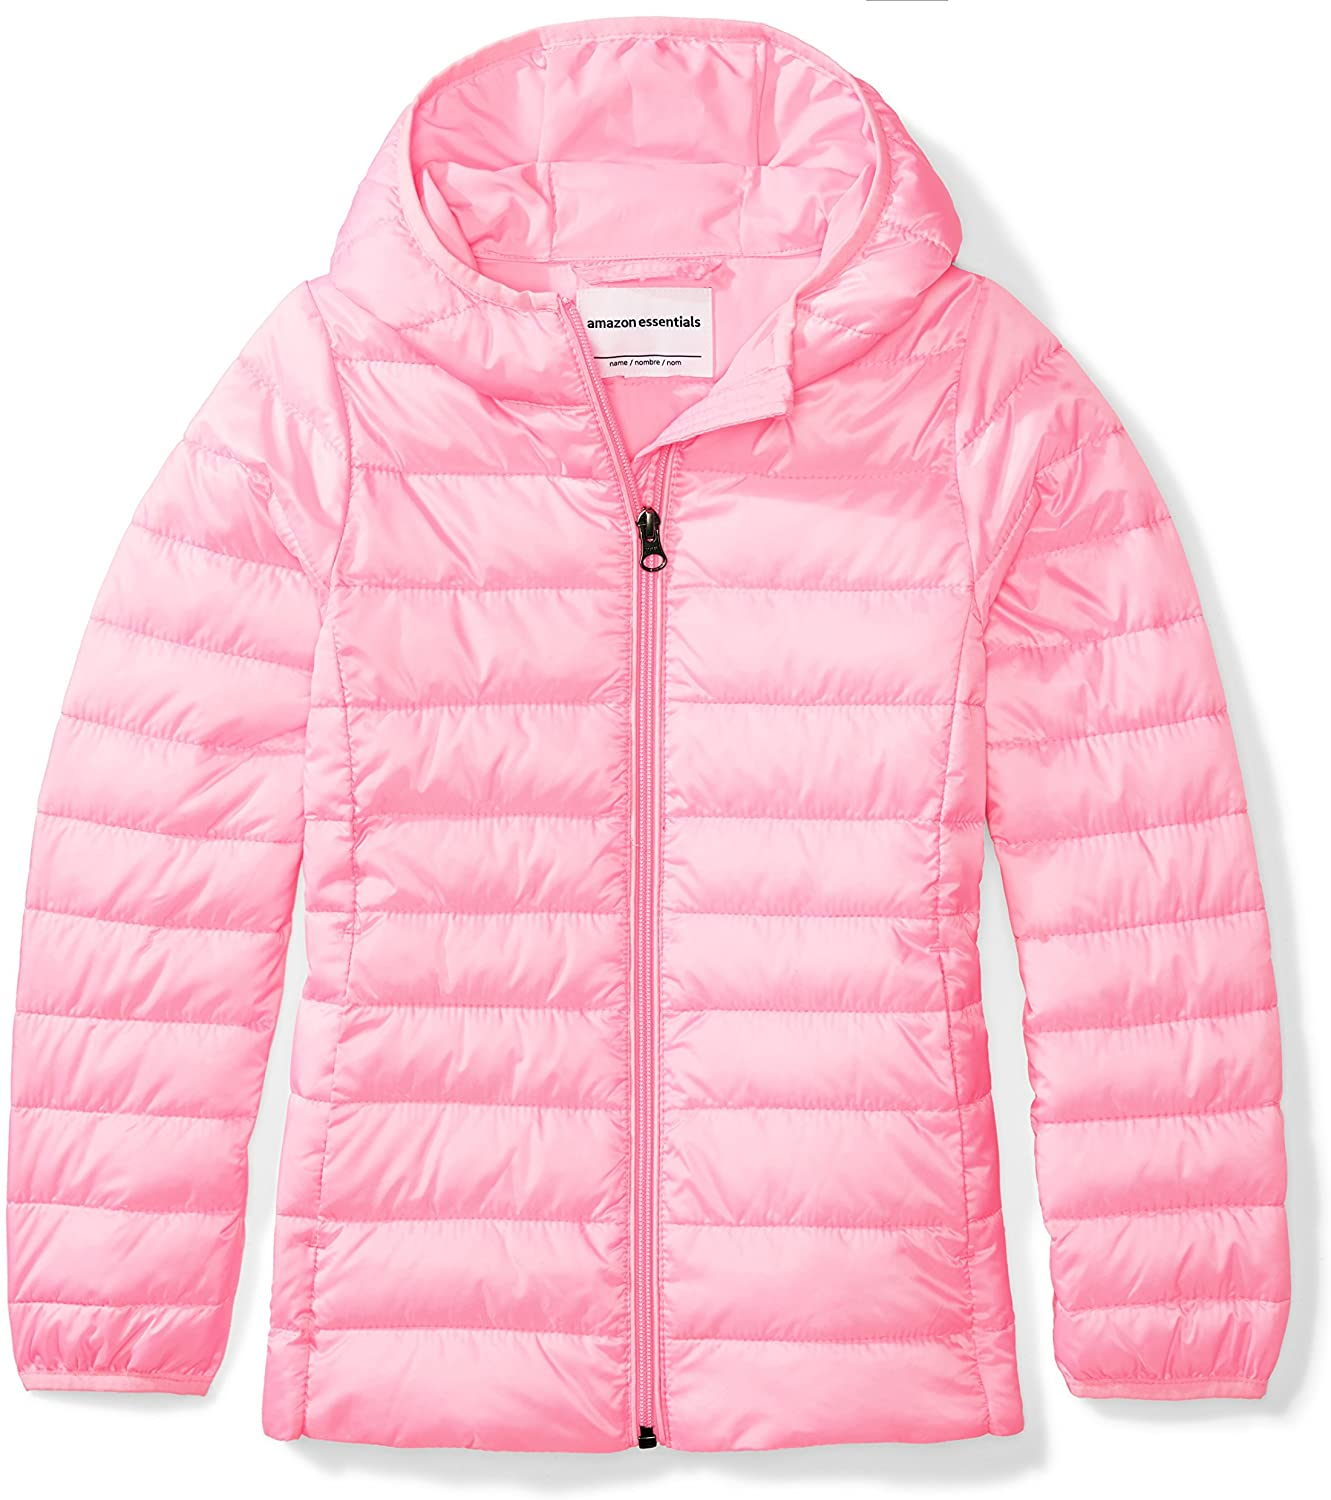 DHgate Essentials Girl's Lightweight Water-Resistant Packable Hooded Puffer Jacket